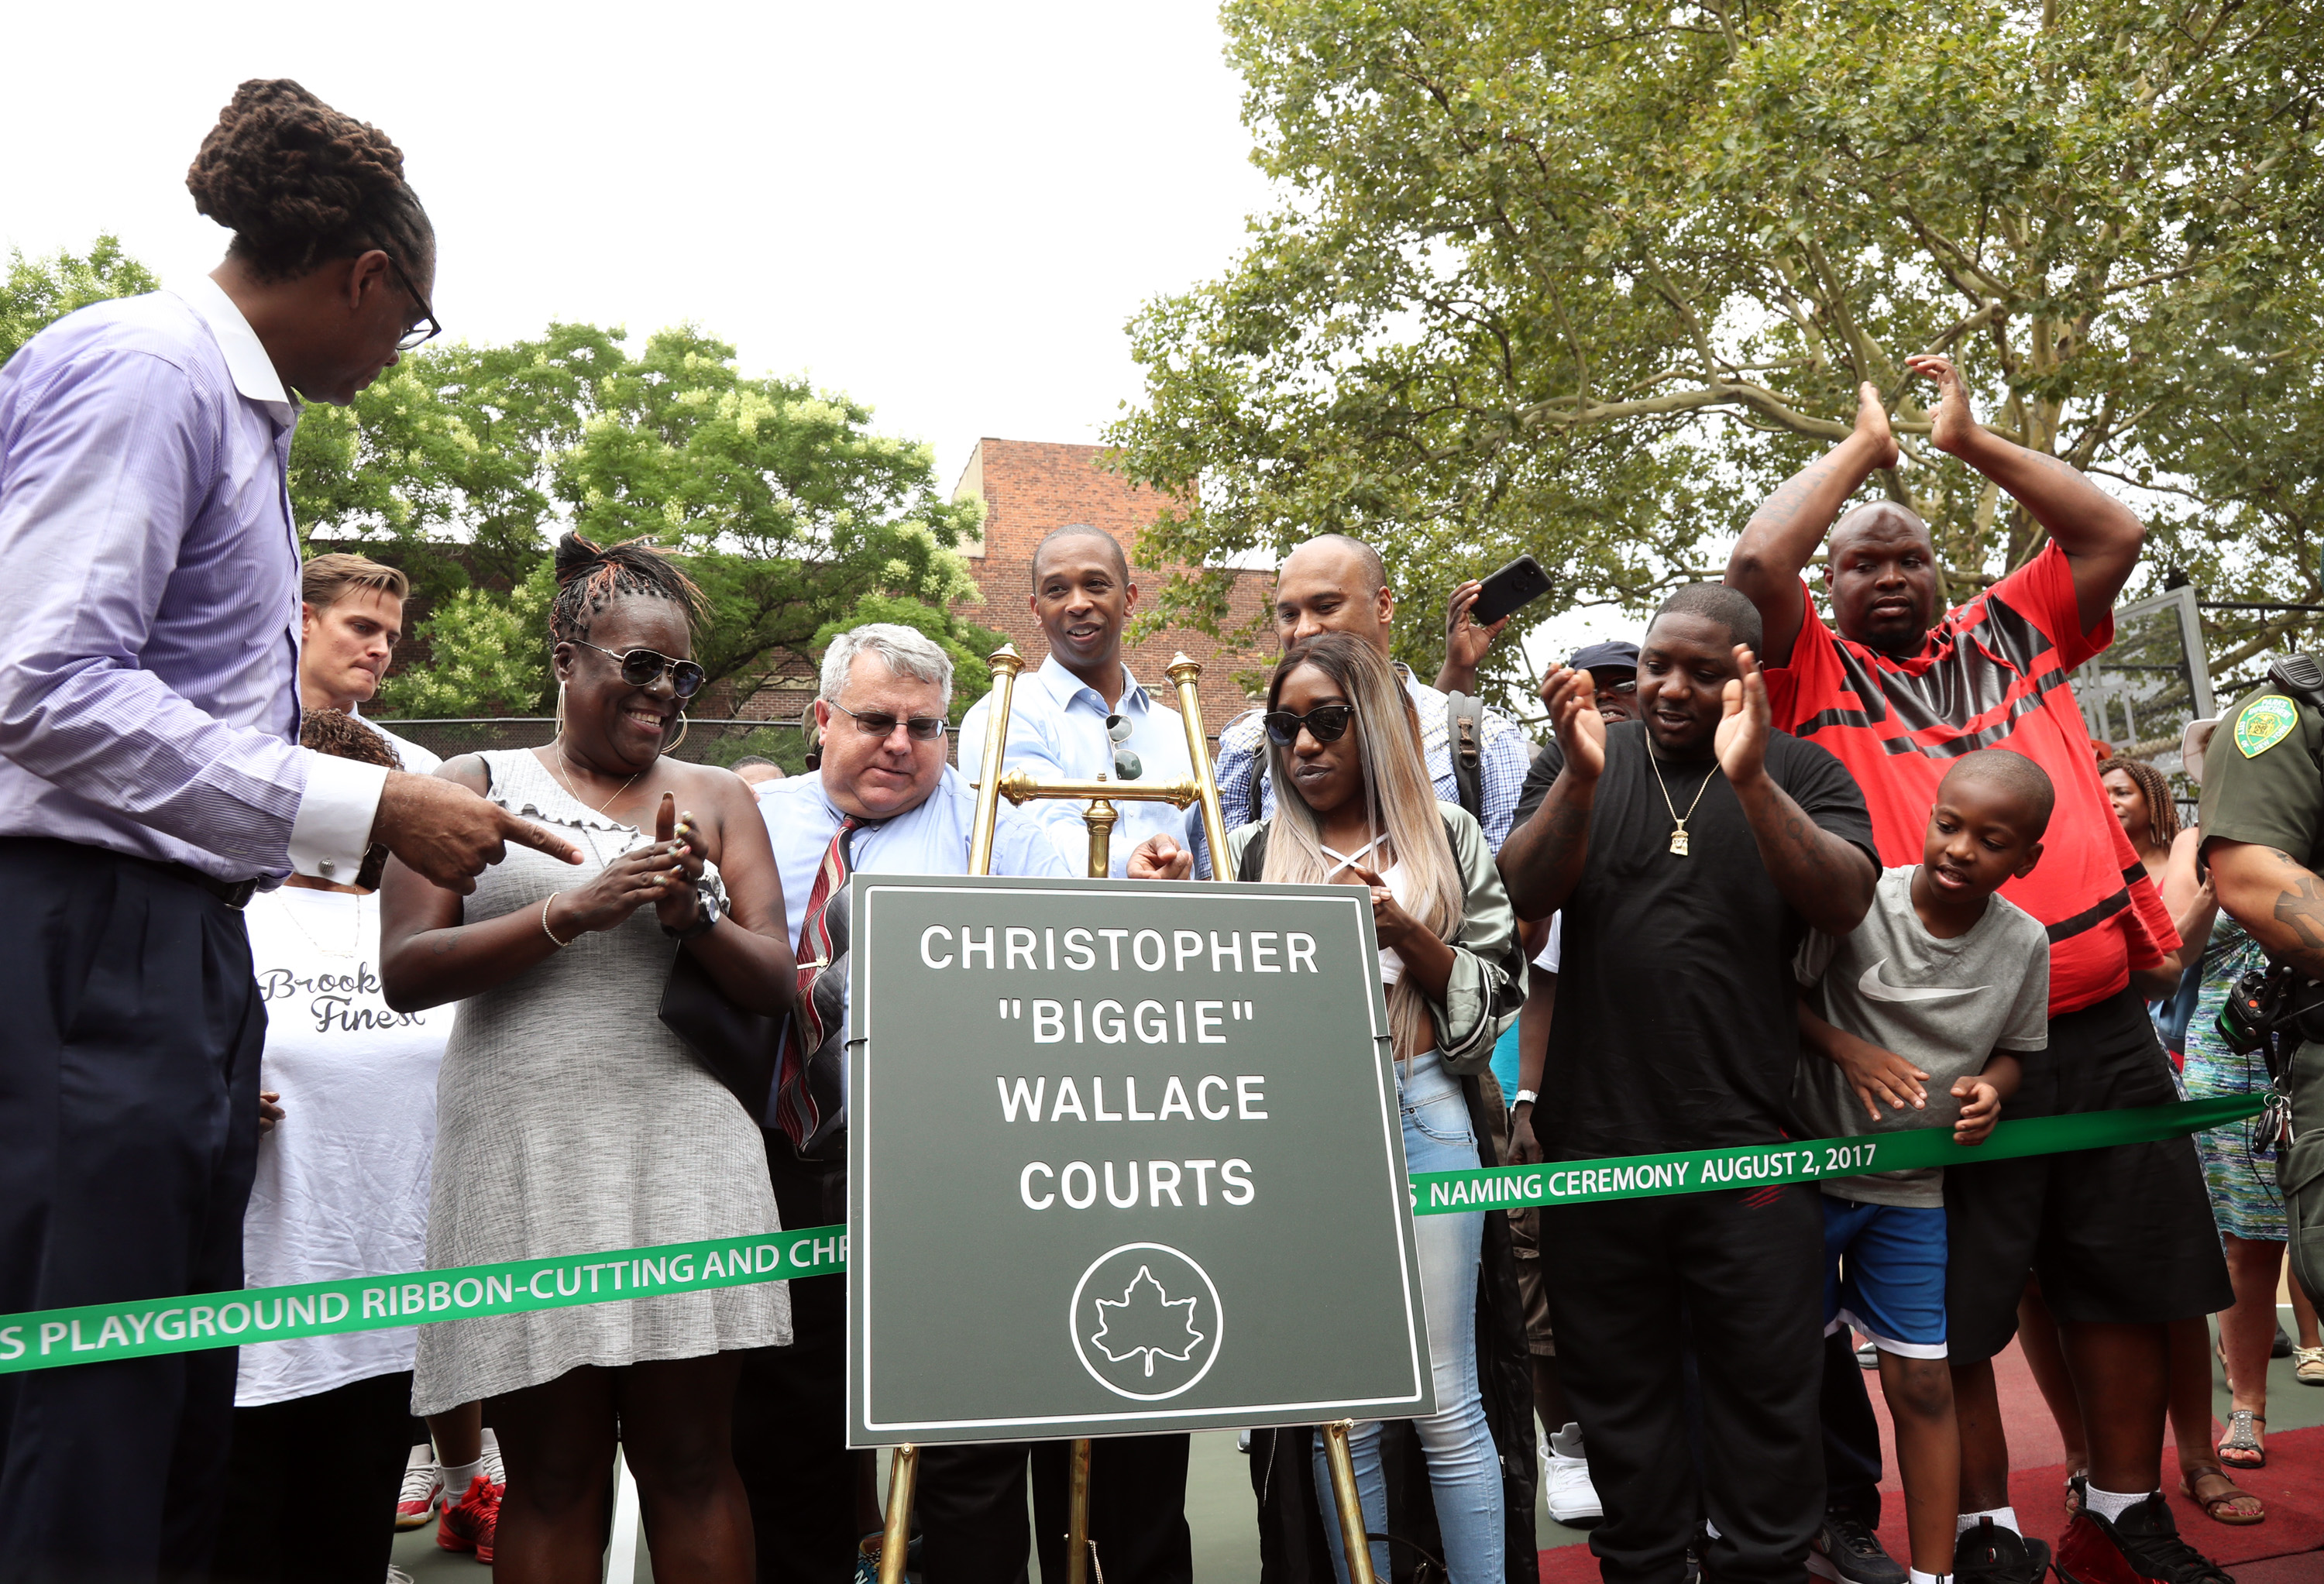 Crispus Attucks Playground Ribbon Cutting Ceremony